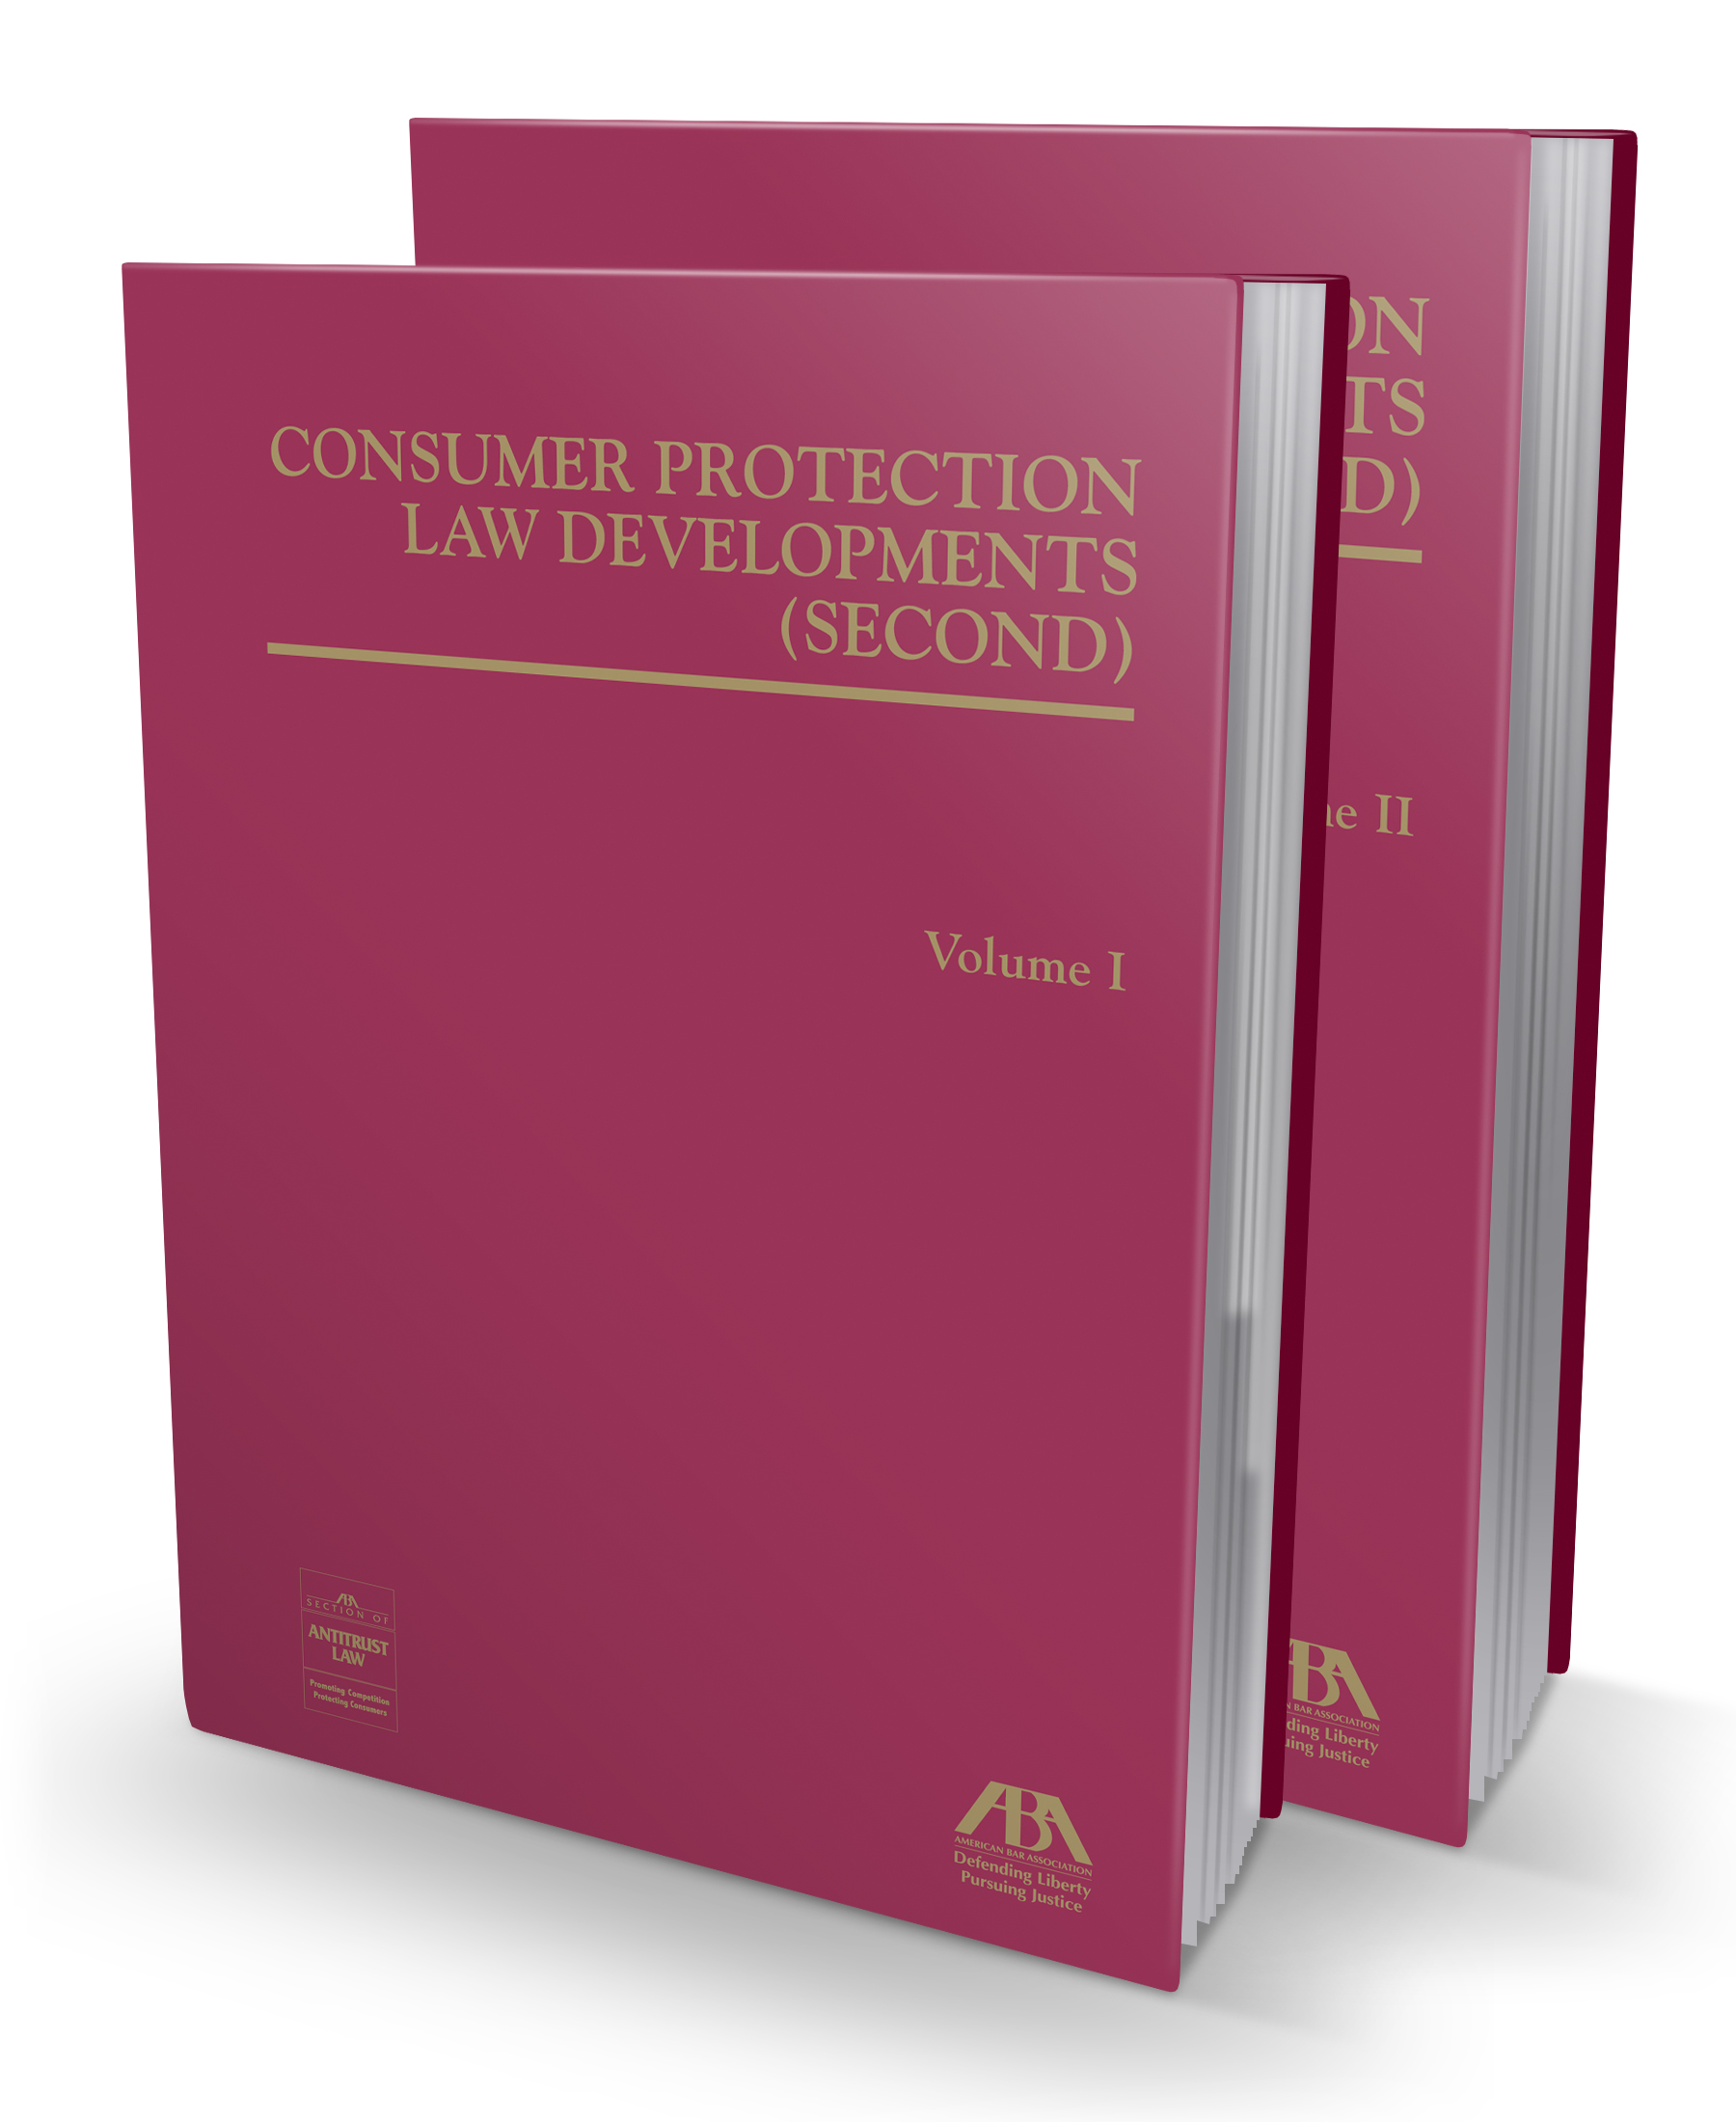 Consumer Protection Law Developments, Second Edition